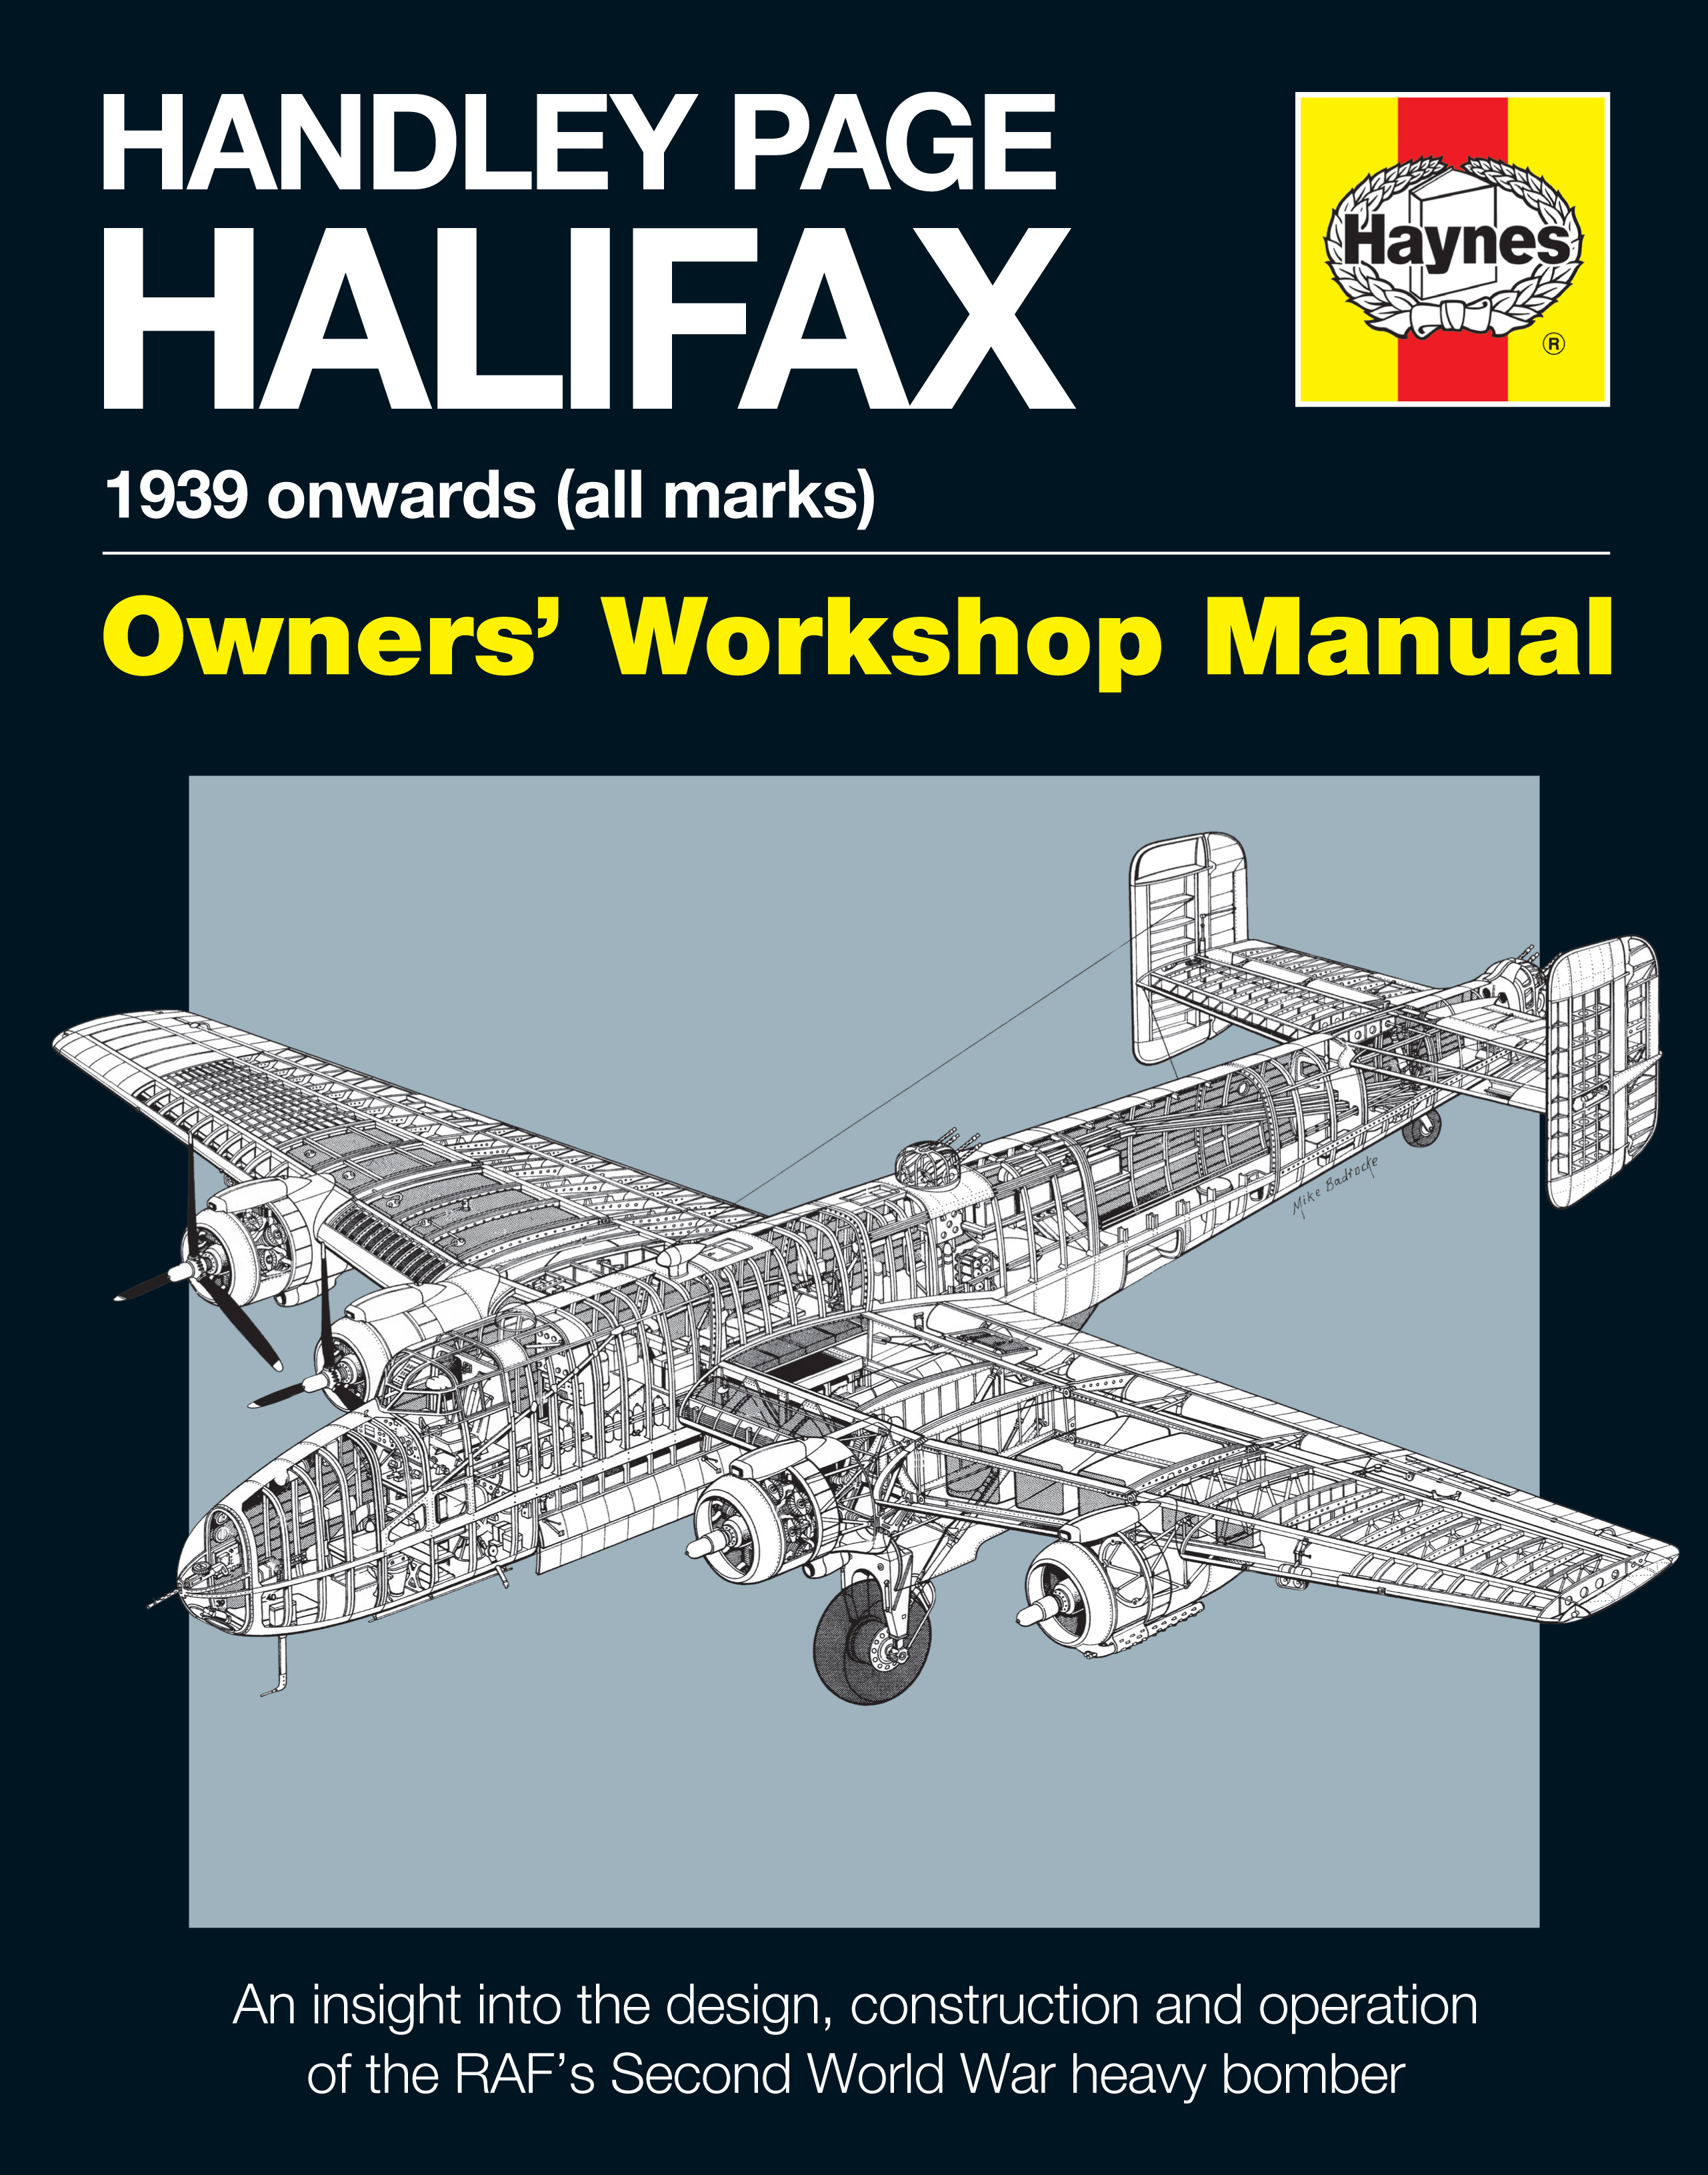 Handley Page Halifax Manual_1